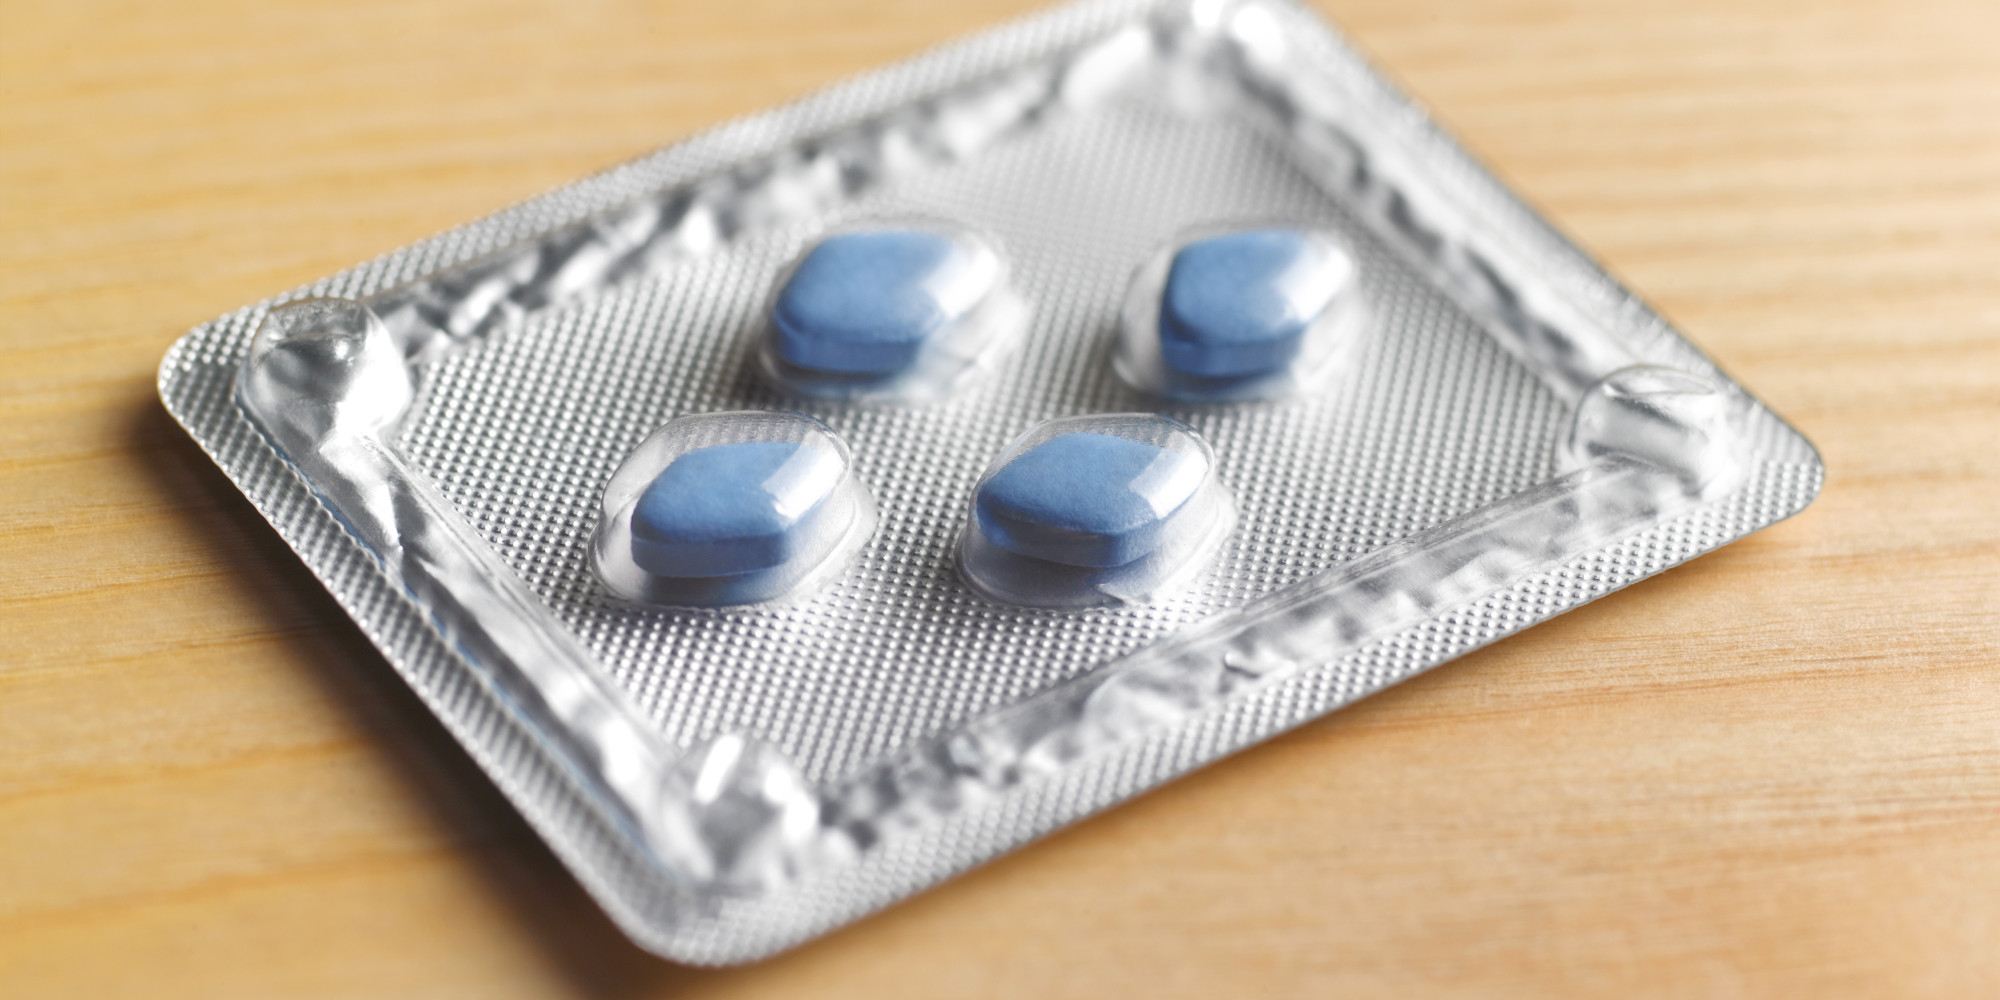 Is sildenafil as good as viagra